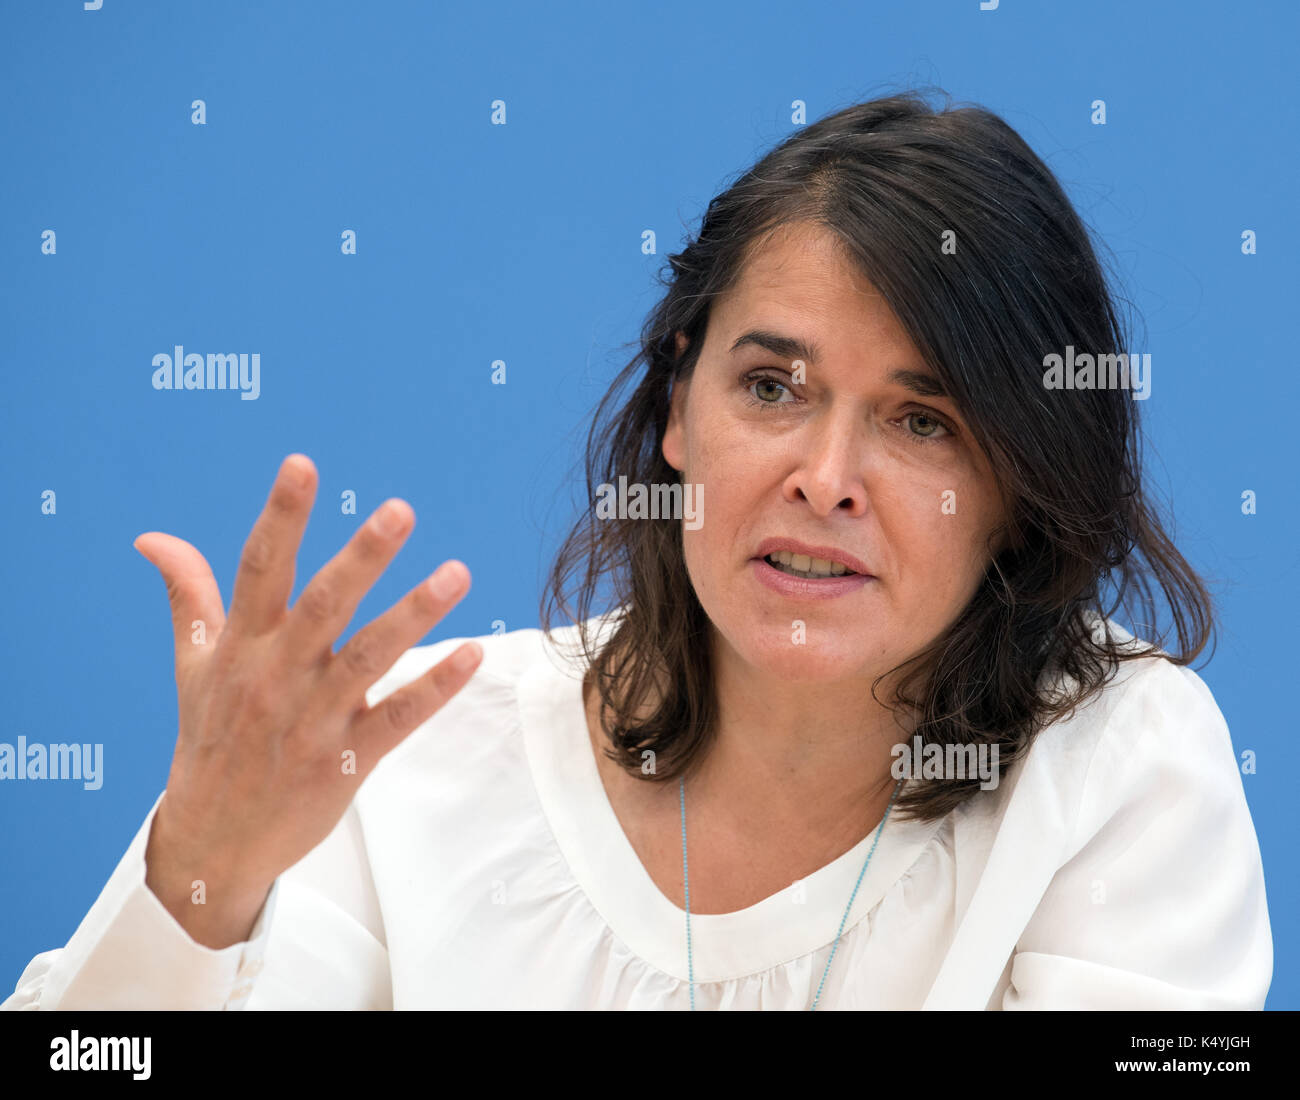 Berlin, Germany. 7th Sep, 2017. Claudia Langer, the founder of Generation Manifest, at a press conference at which the newly founded environmental pressure group Generation Manifest presented its programme in Berlin, Germany, 7 September 2017. Prominent figures from civil society, science, economy, and politics founded the initiative in order to remind politicians of the dangers of the reckless endangerment of future generations. Photo: Soeren Stache/dpa/Alamy Live News - Stock Image